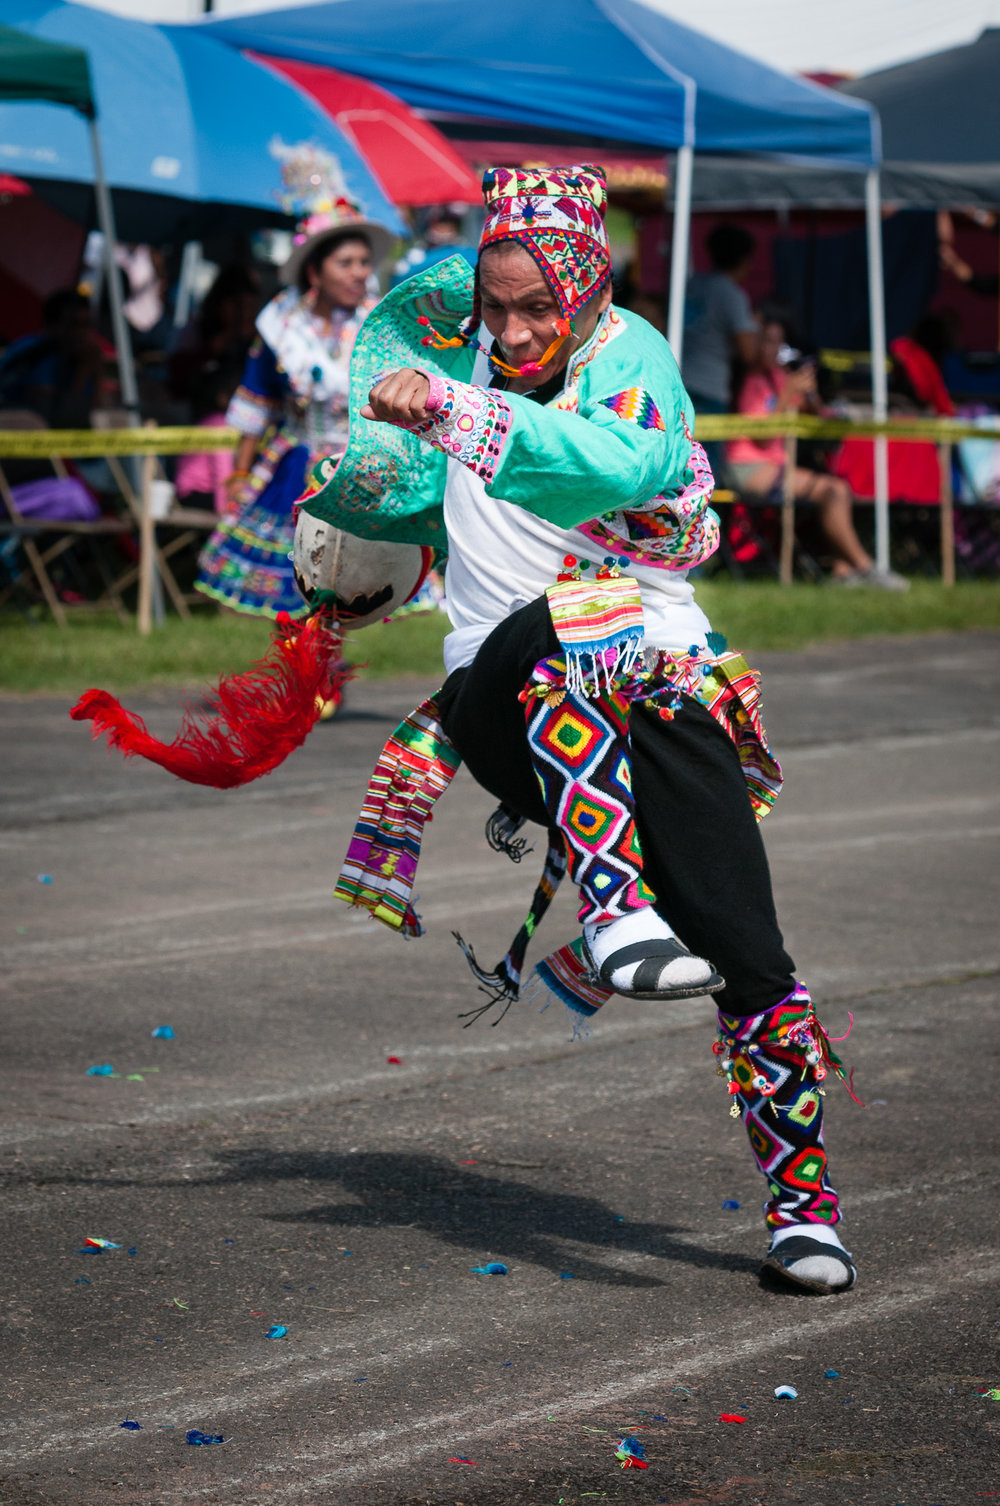 An energetic move during a Tinkus dance performed by Tinkus Bolivia.